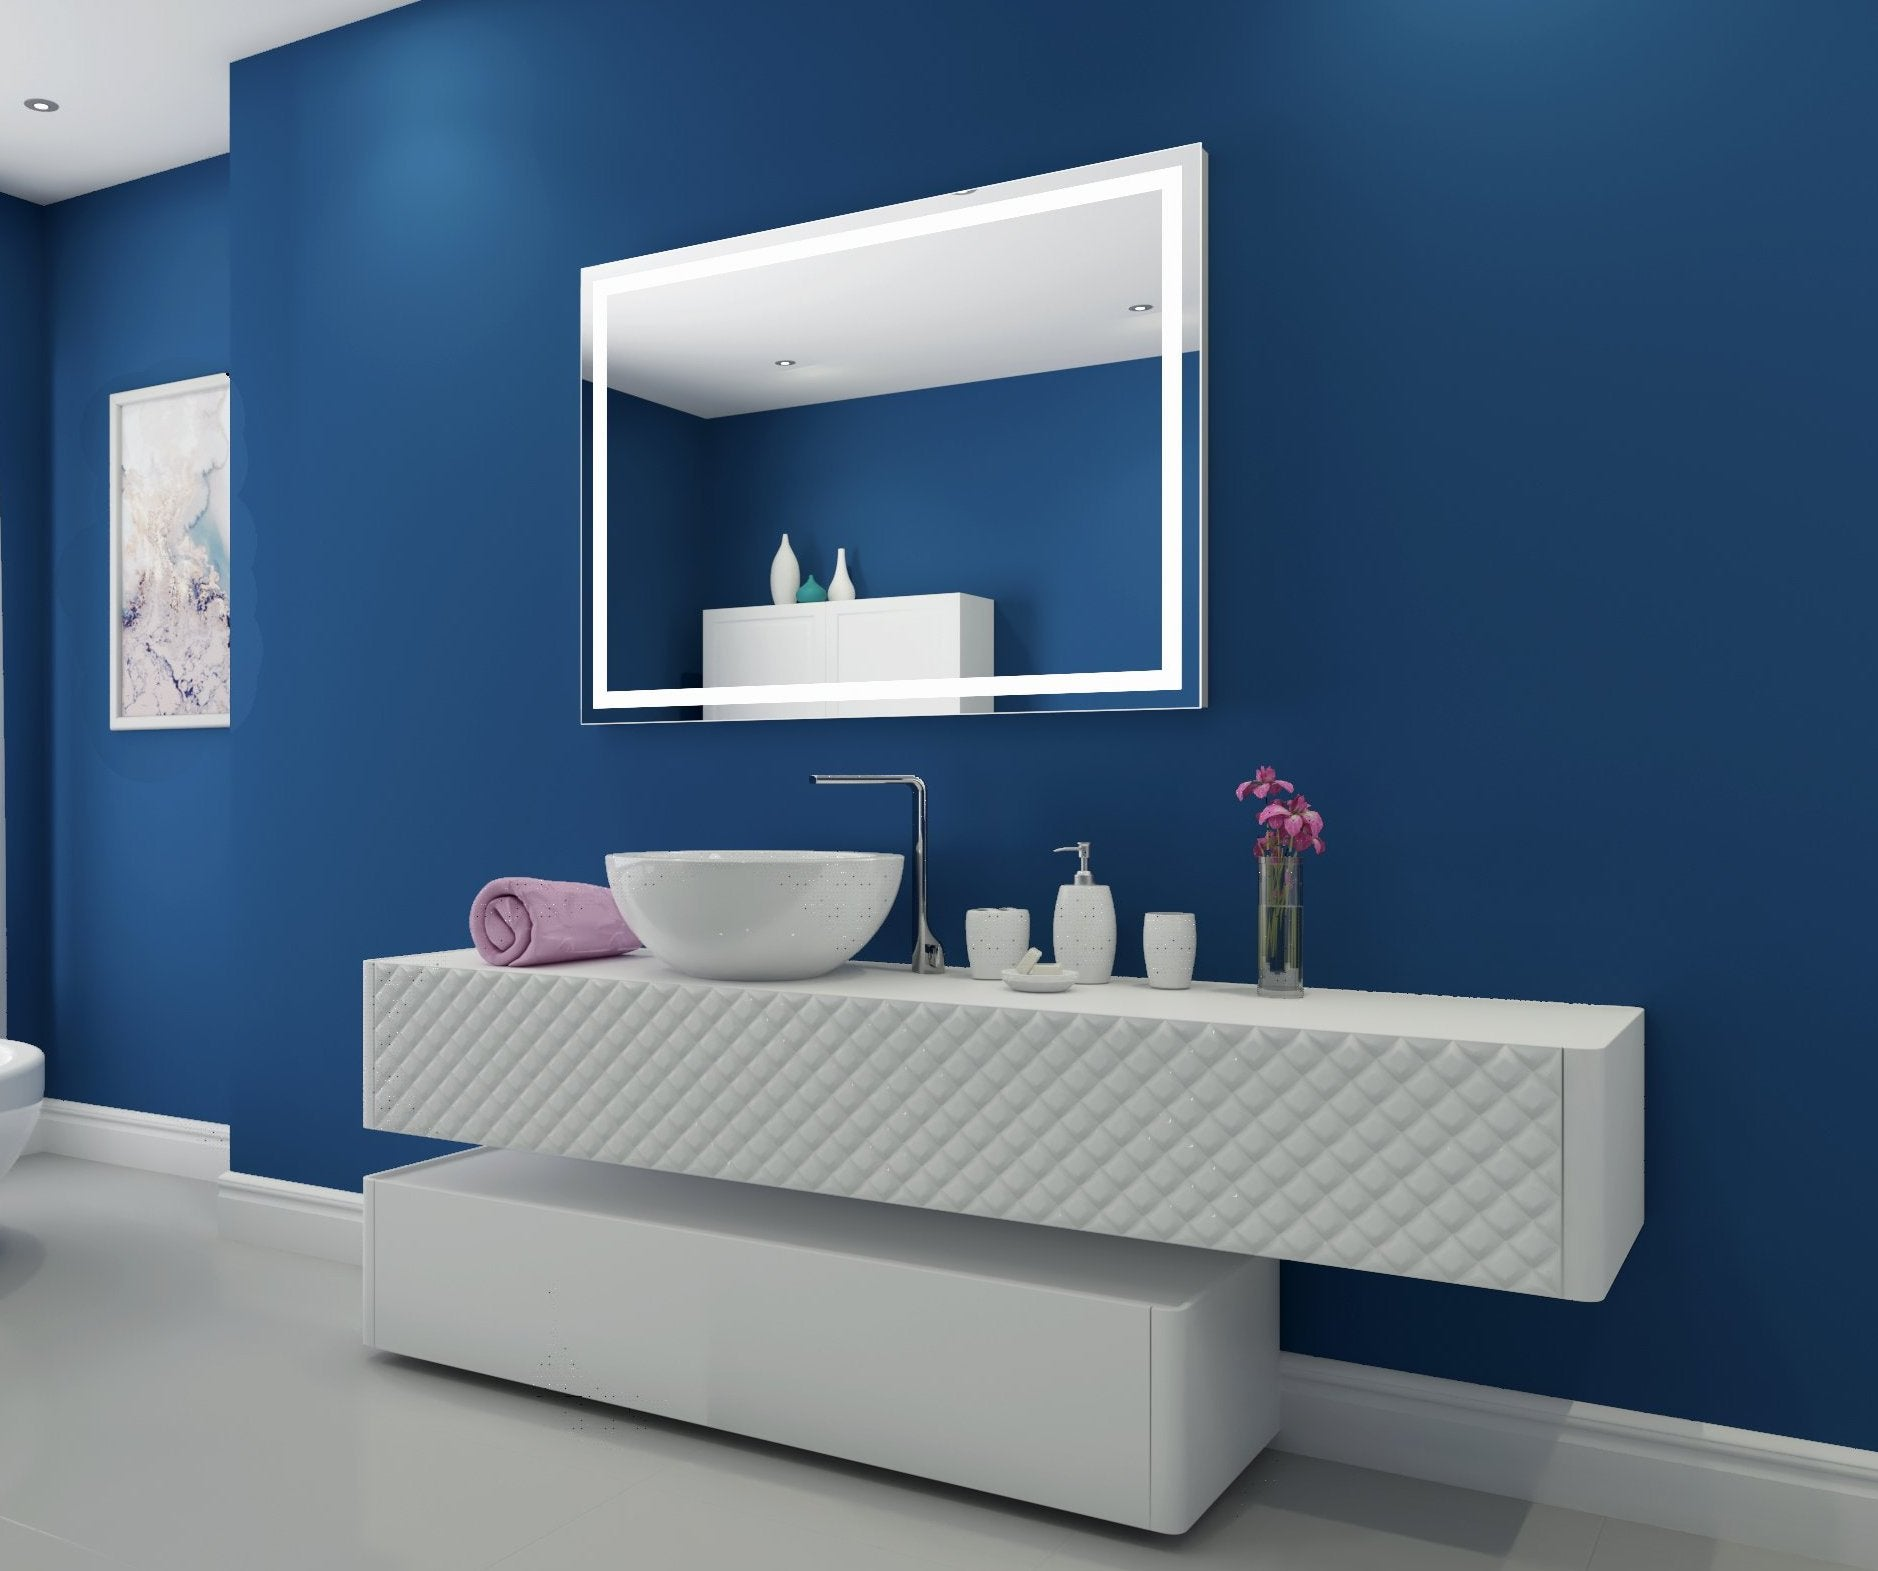 Dimmable Lighted Mirror Harmony 48 X 35 In Ib Mirror